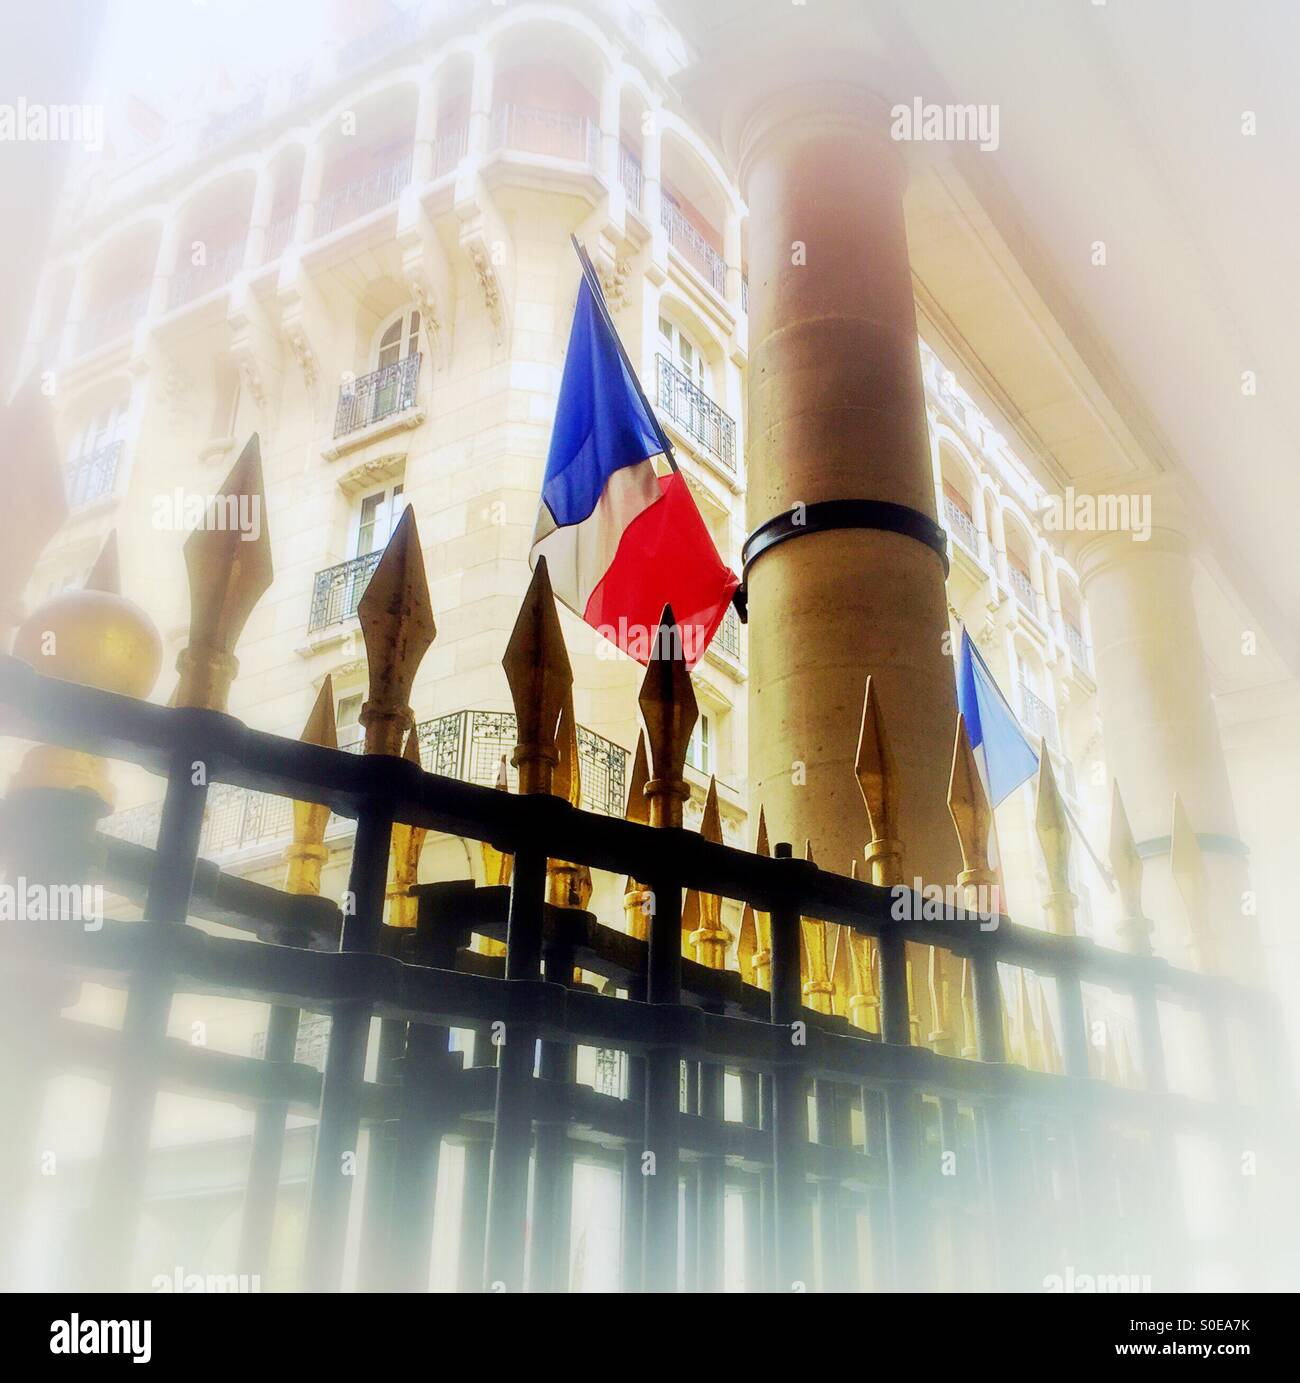 French flag on classic column with gold and black gate in foreground and beautiful traditional Parisian apartment - Stock Image